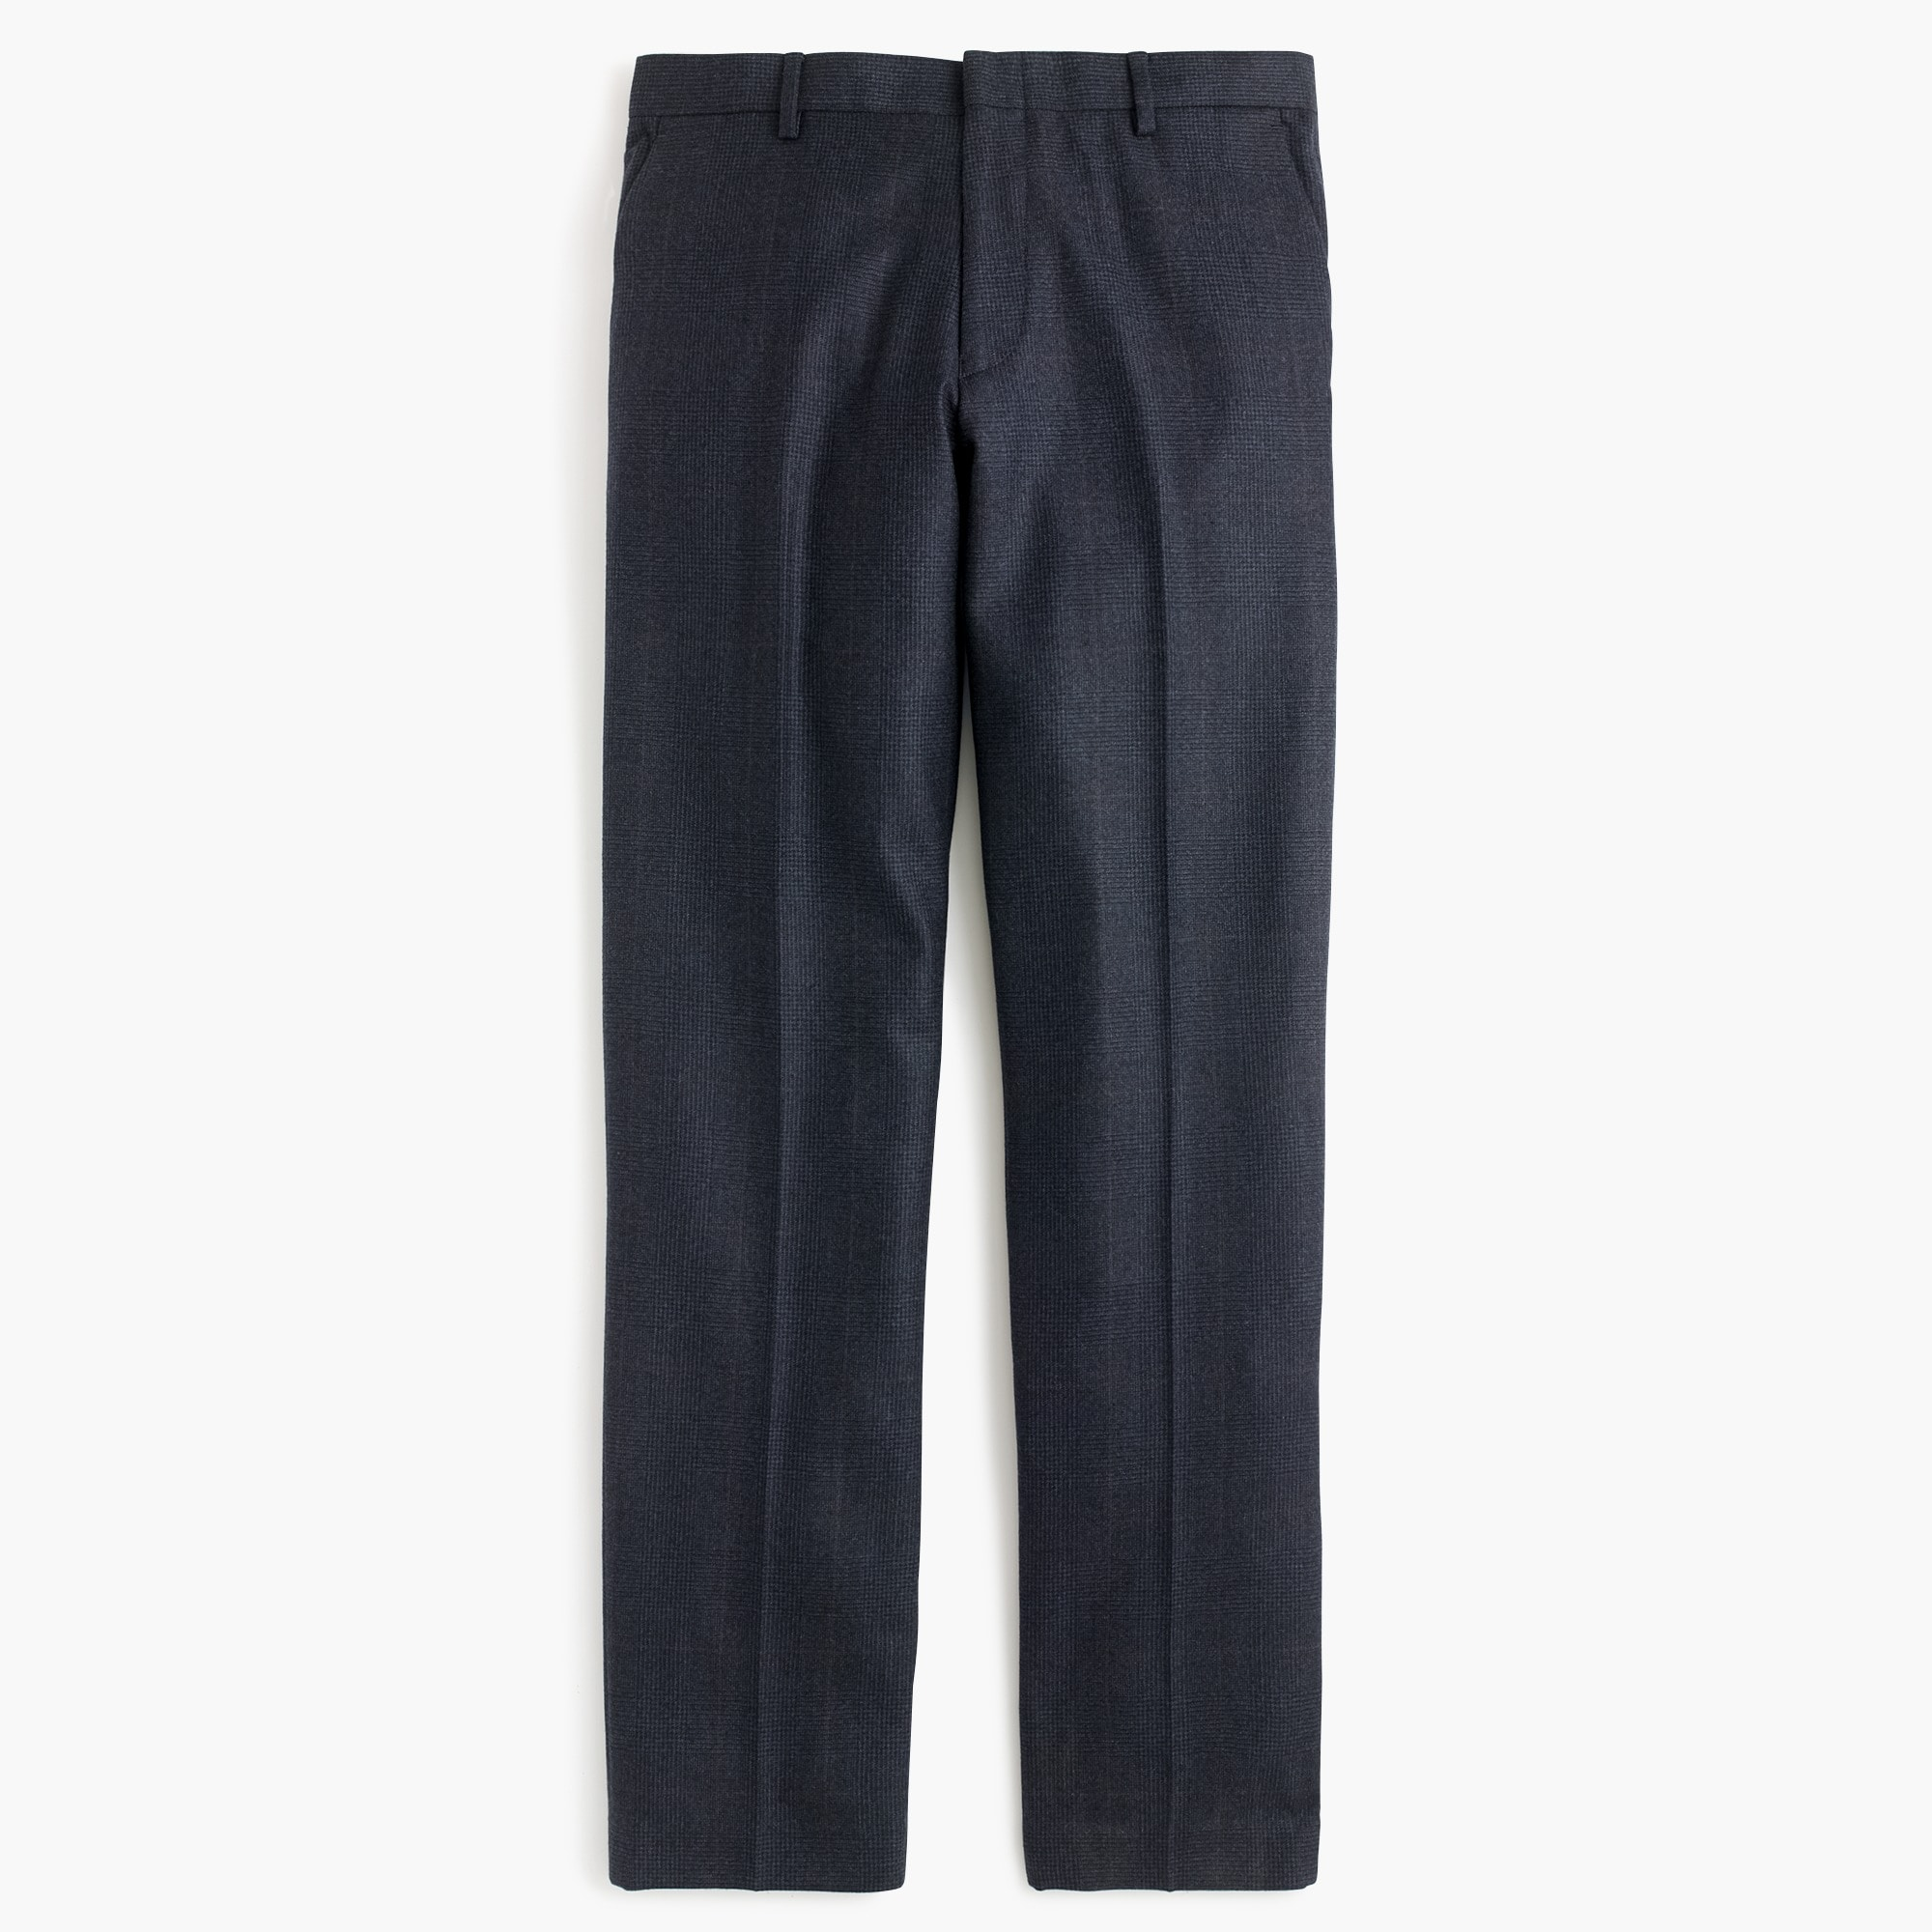 Ludlow slim suit pant in Italian glen-plaid wool